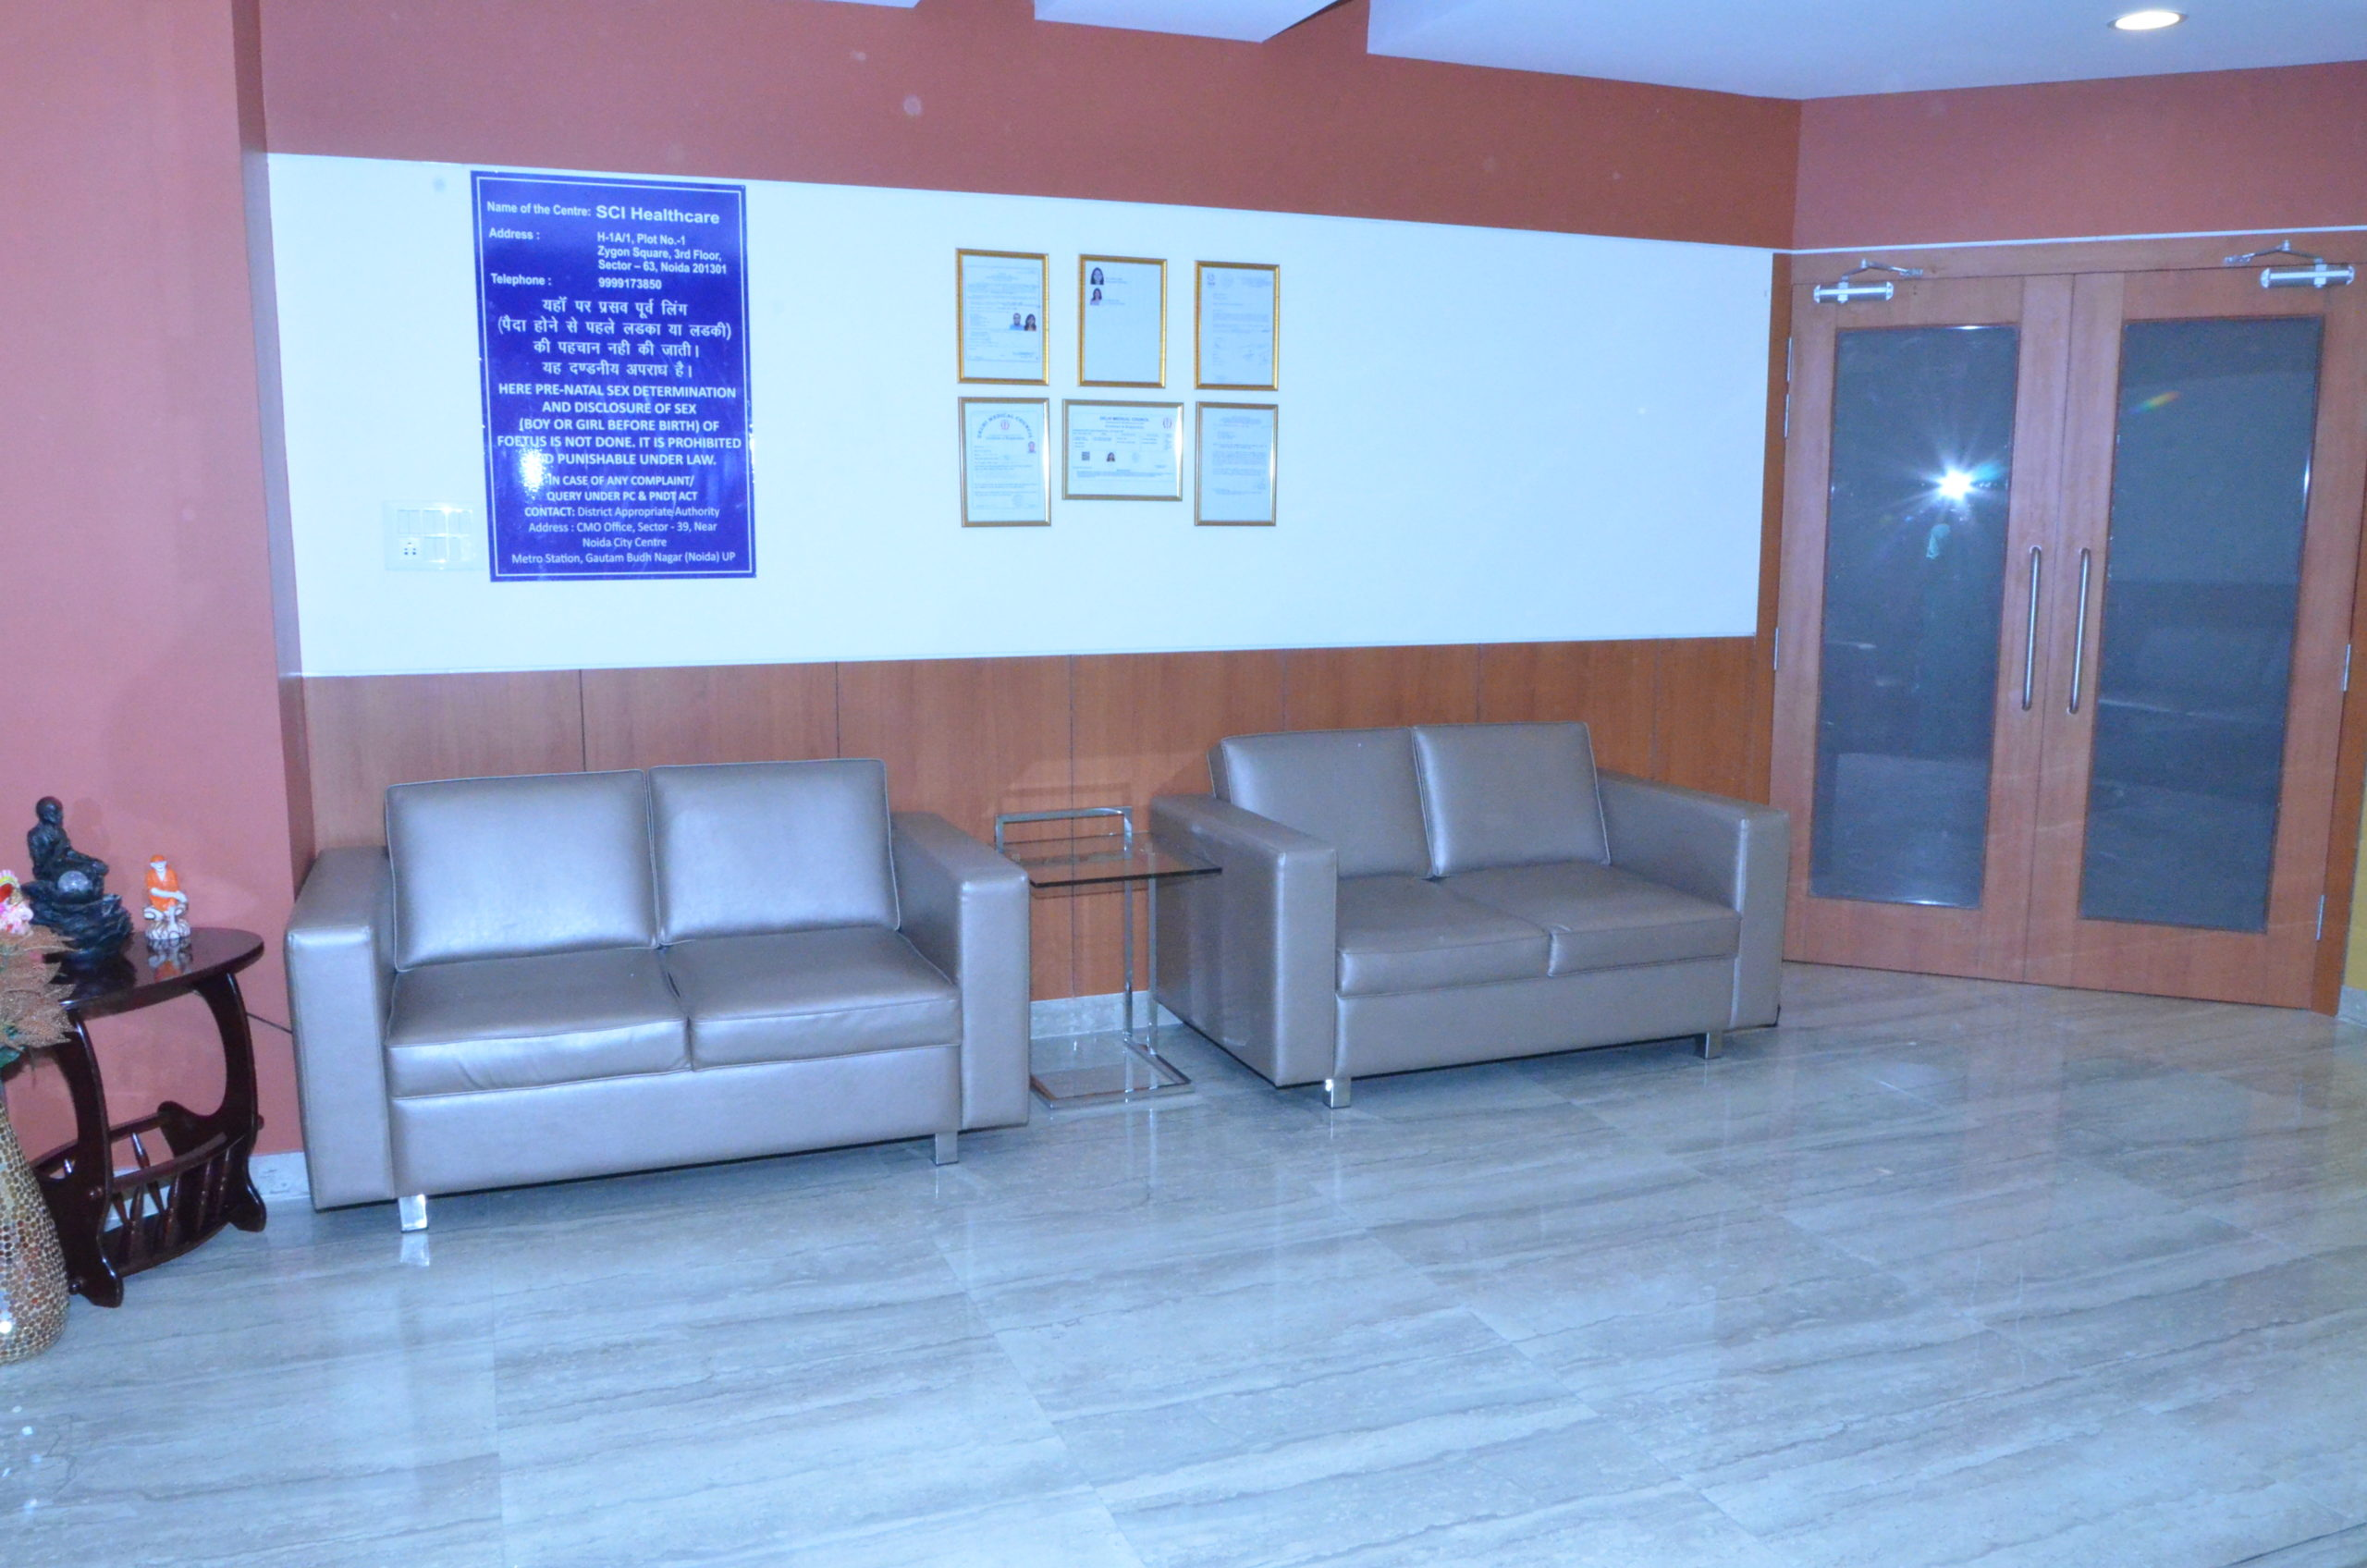 sci ivf centre waiting room2